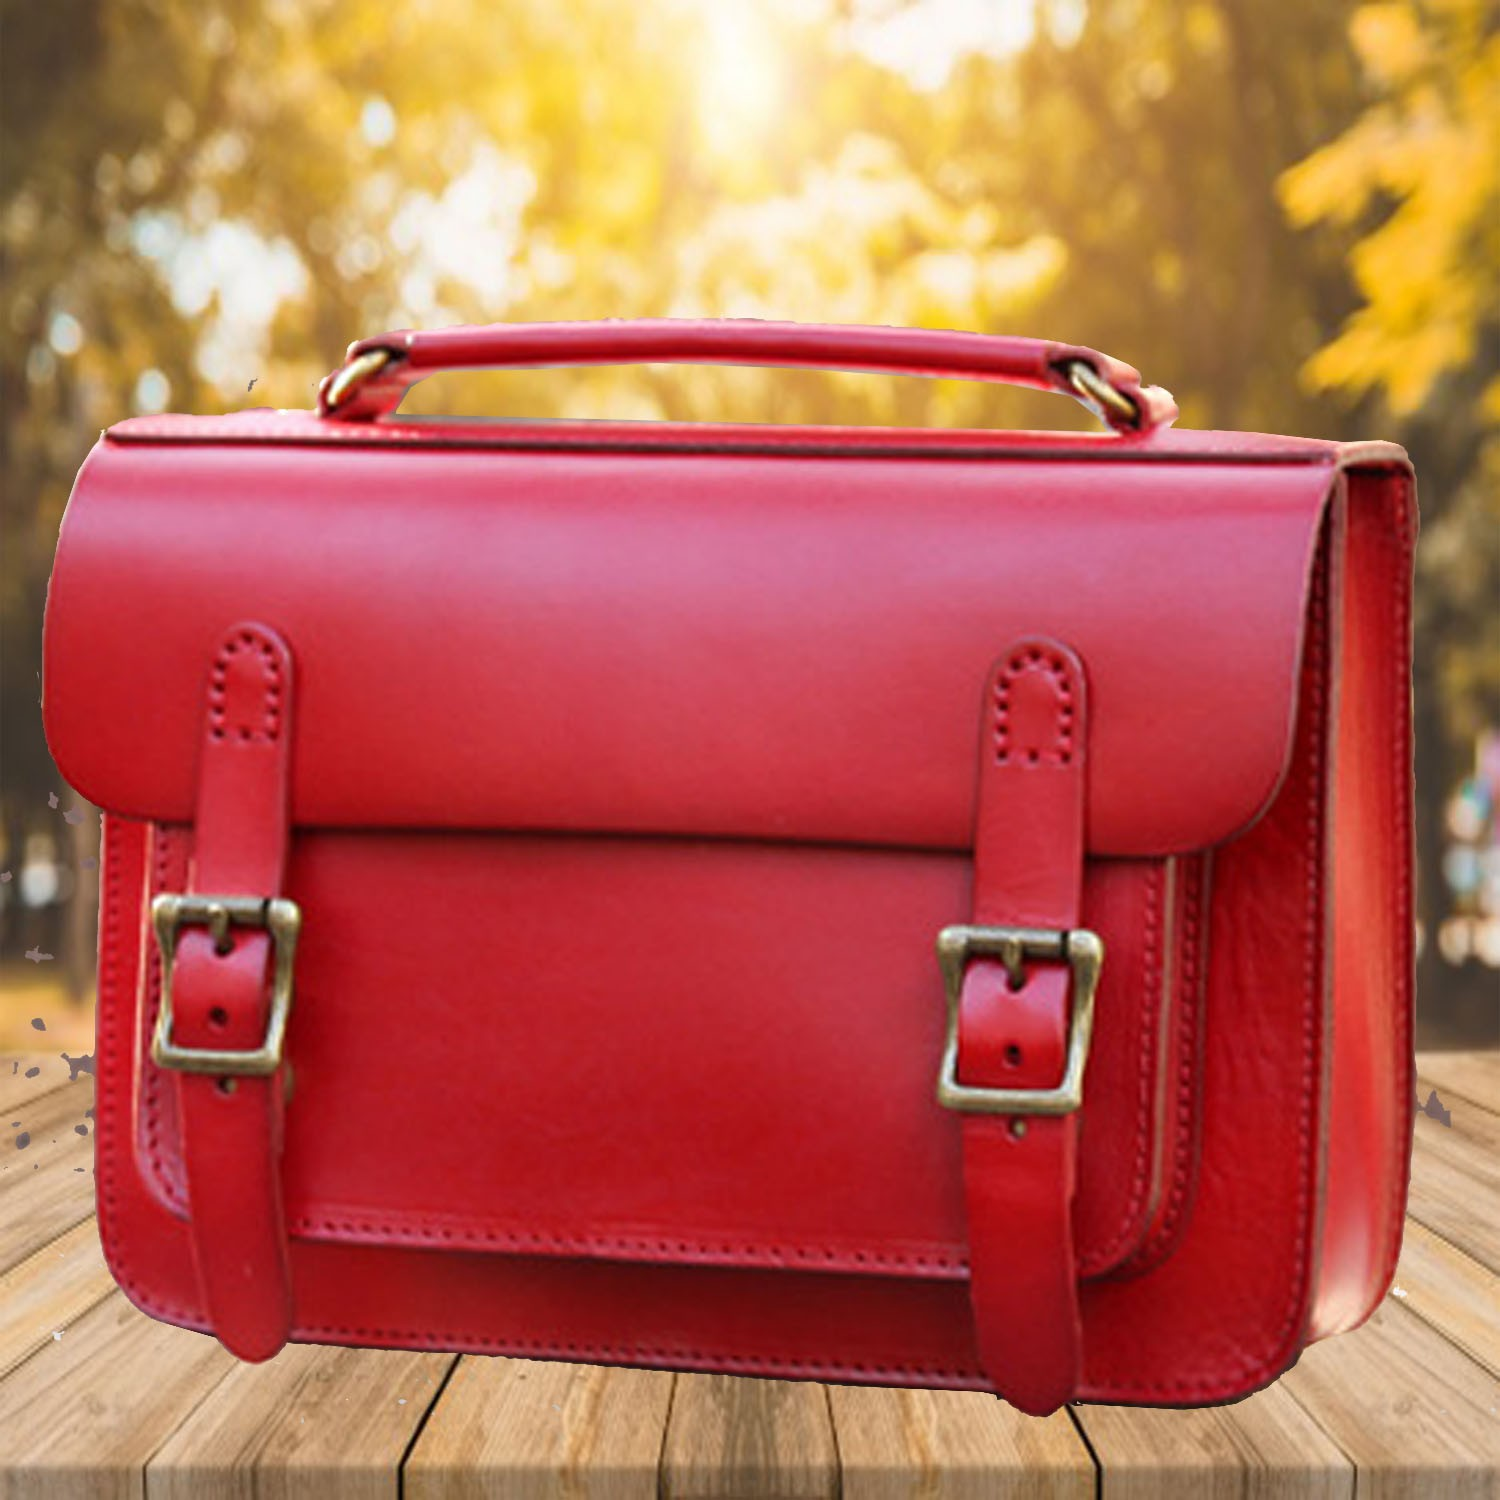 da4b85aace0a Womens Red Leather Satchel Bag | Handmade Leather Messenger Bag